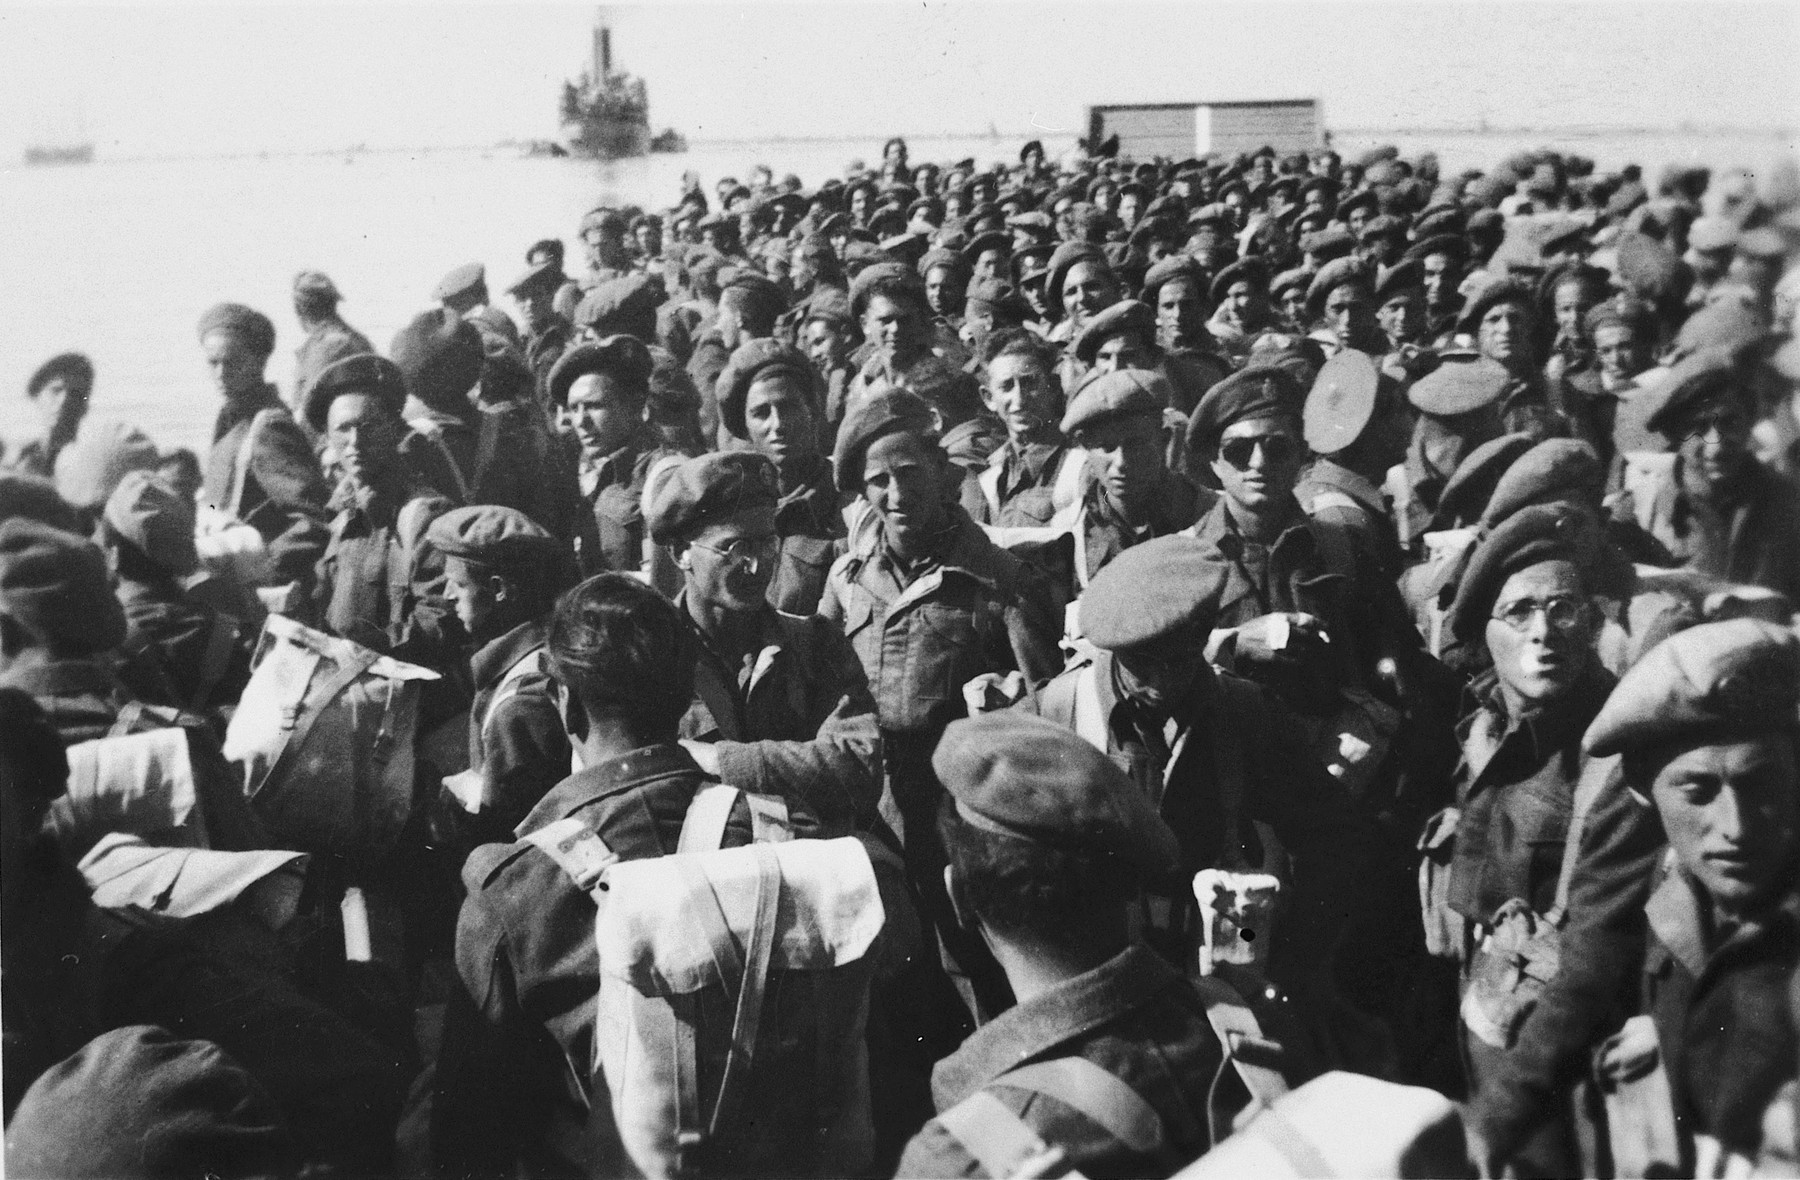 Soldiers from the Jewish Brigade prepare to depart for Europe.